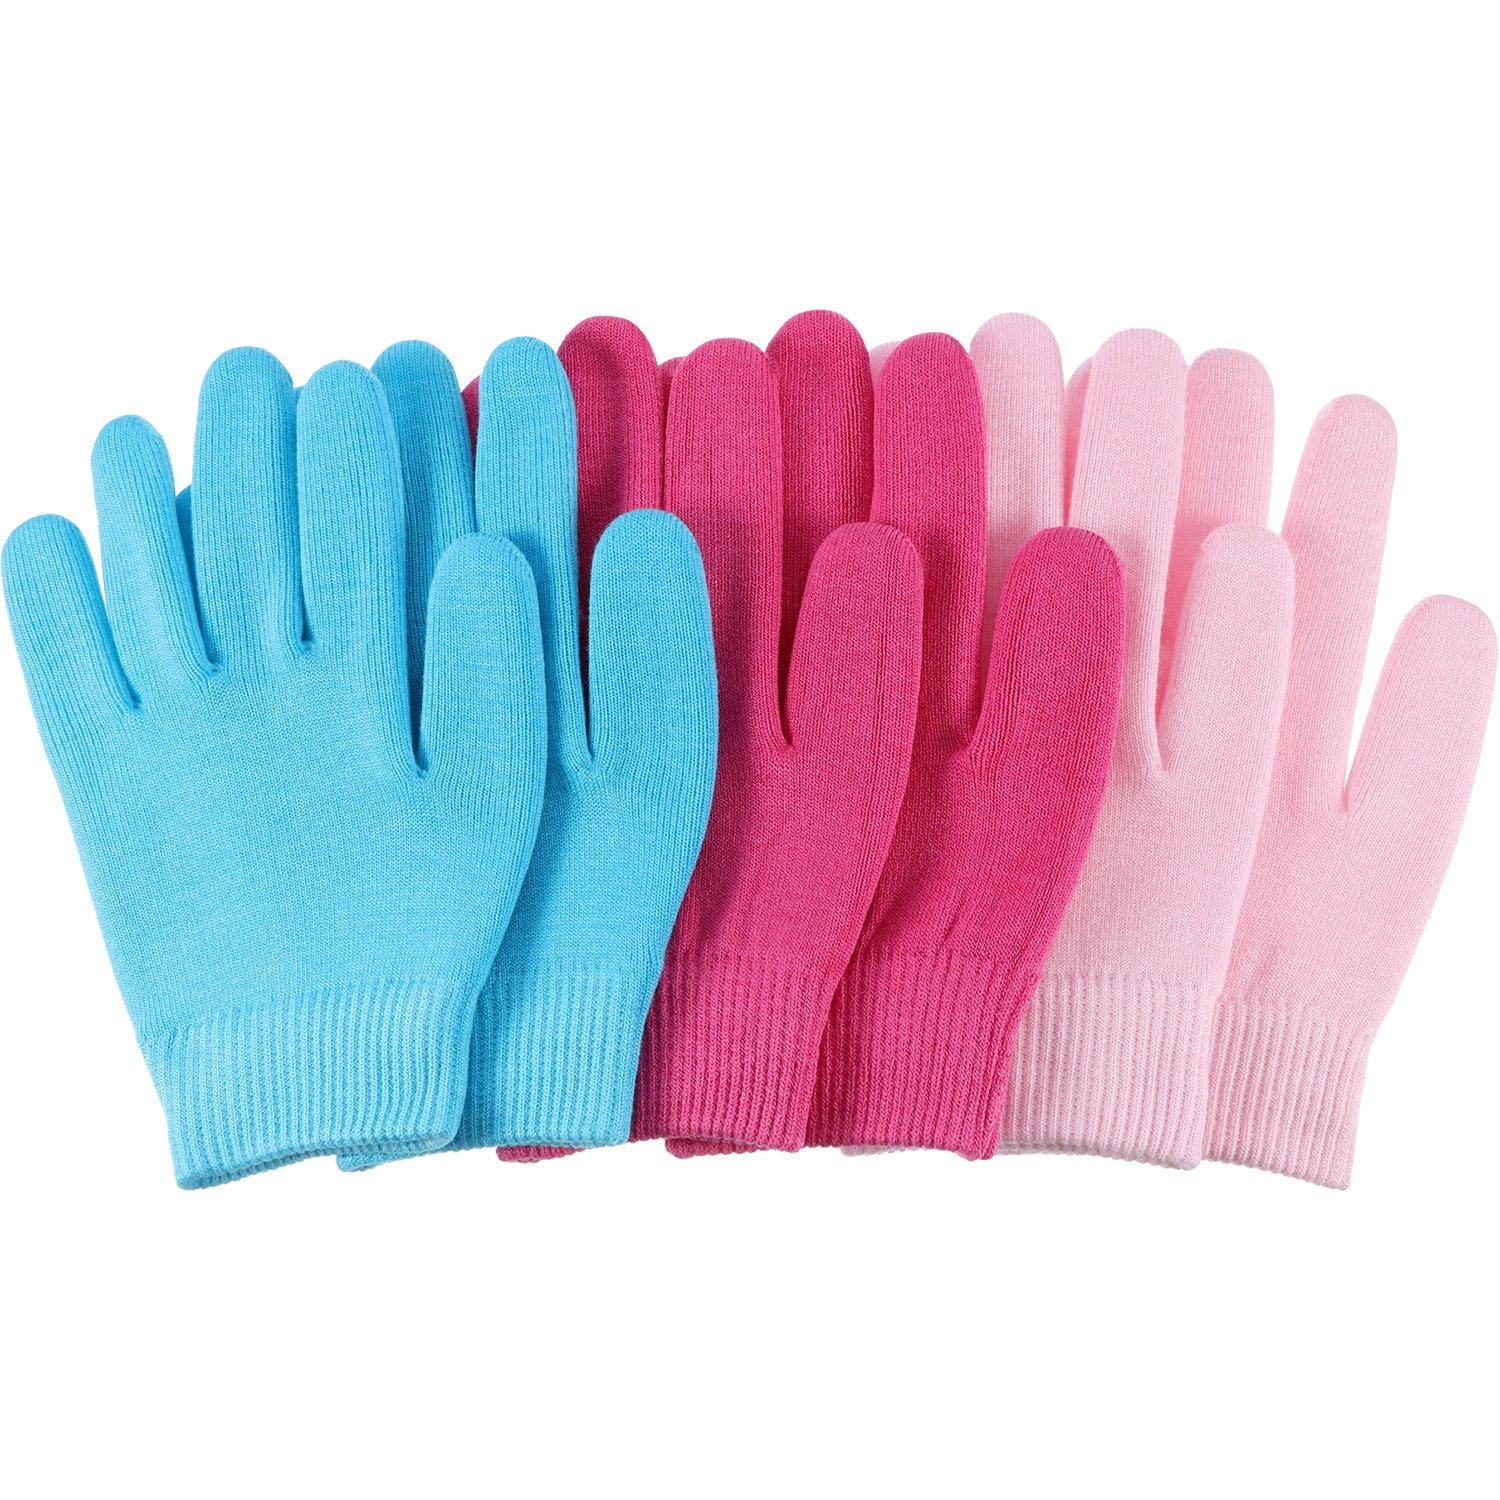 Bememo 3 Pairs Gel Moisturizing Spa Gloves Hand Spa Gloves Moisture Enhancing Gloves, Pink, Blue and Rose Red